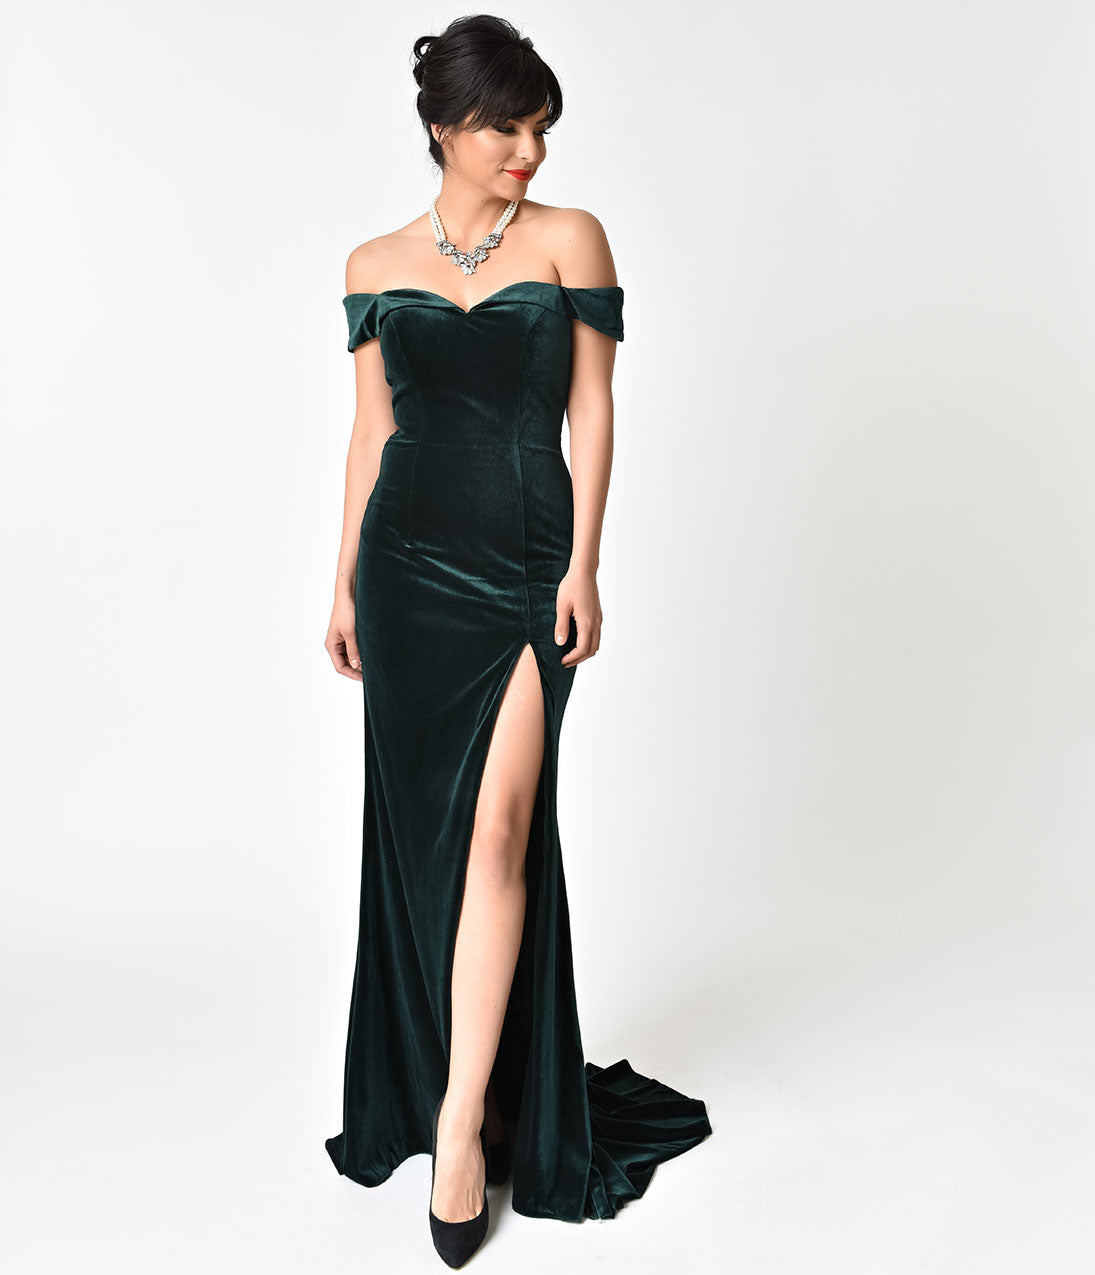 Cocktail Dresses and Gowns